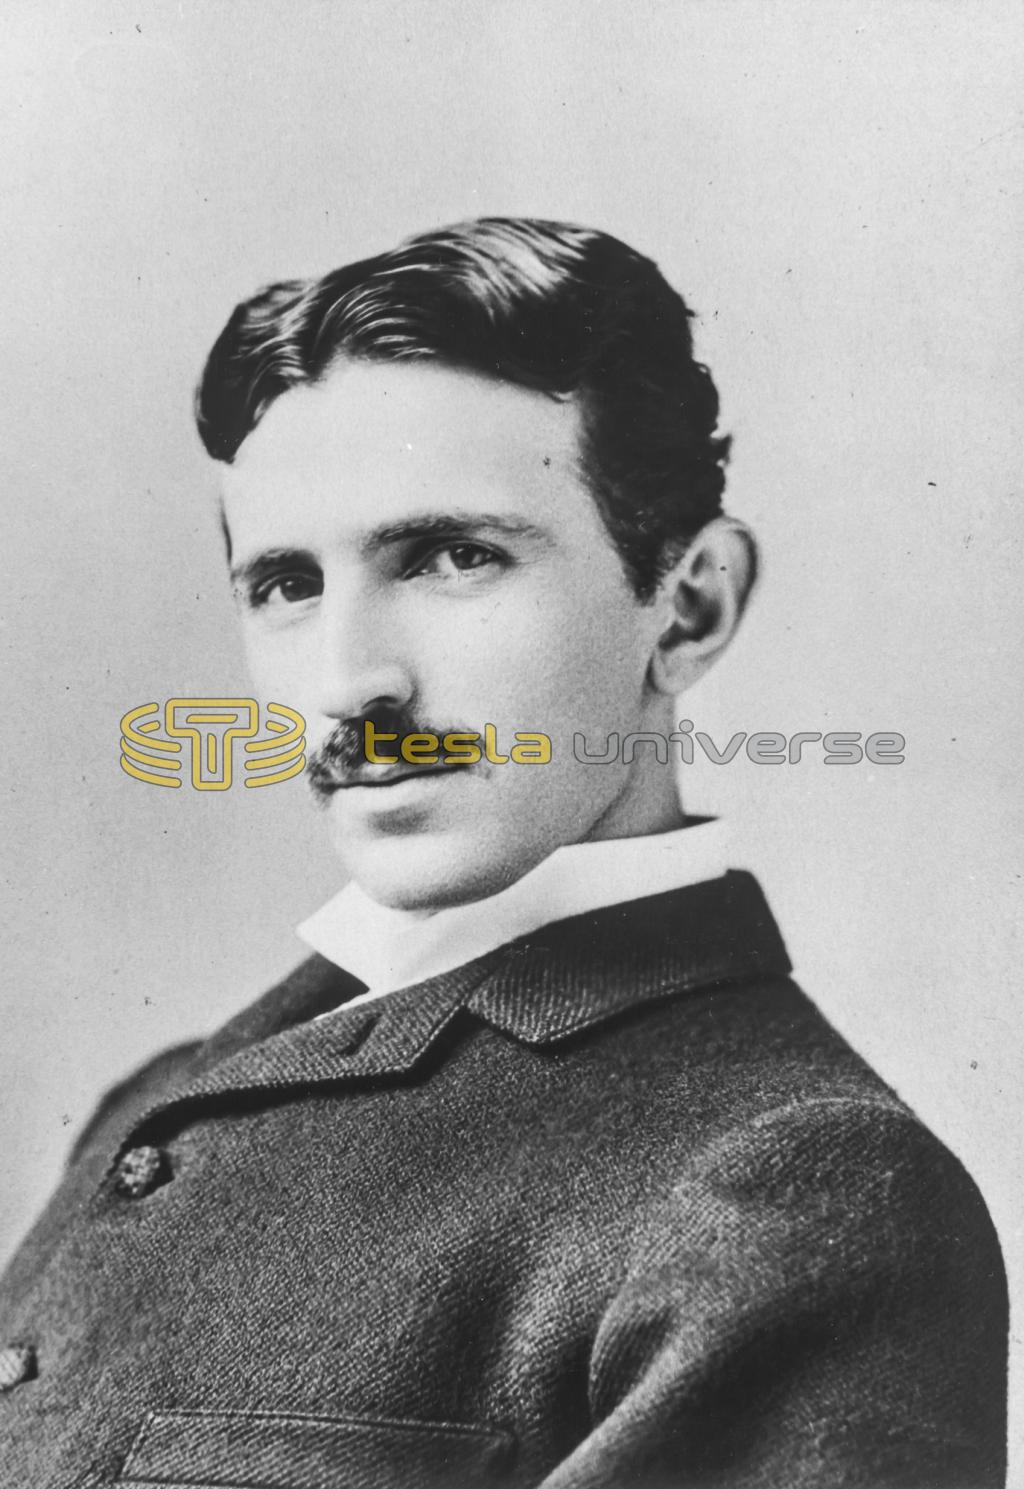 Portrait of electrical genius, Nikola Tesla, at the height of his fame